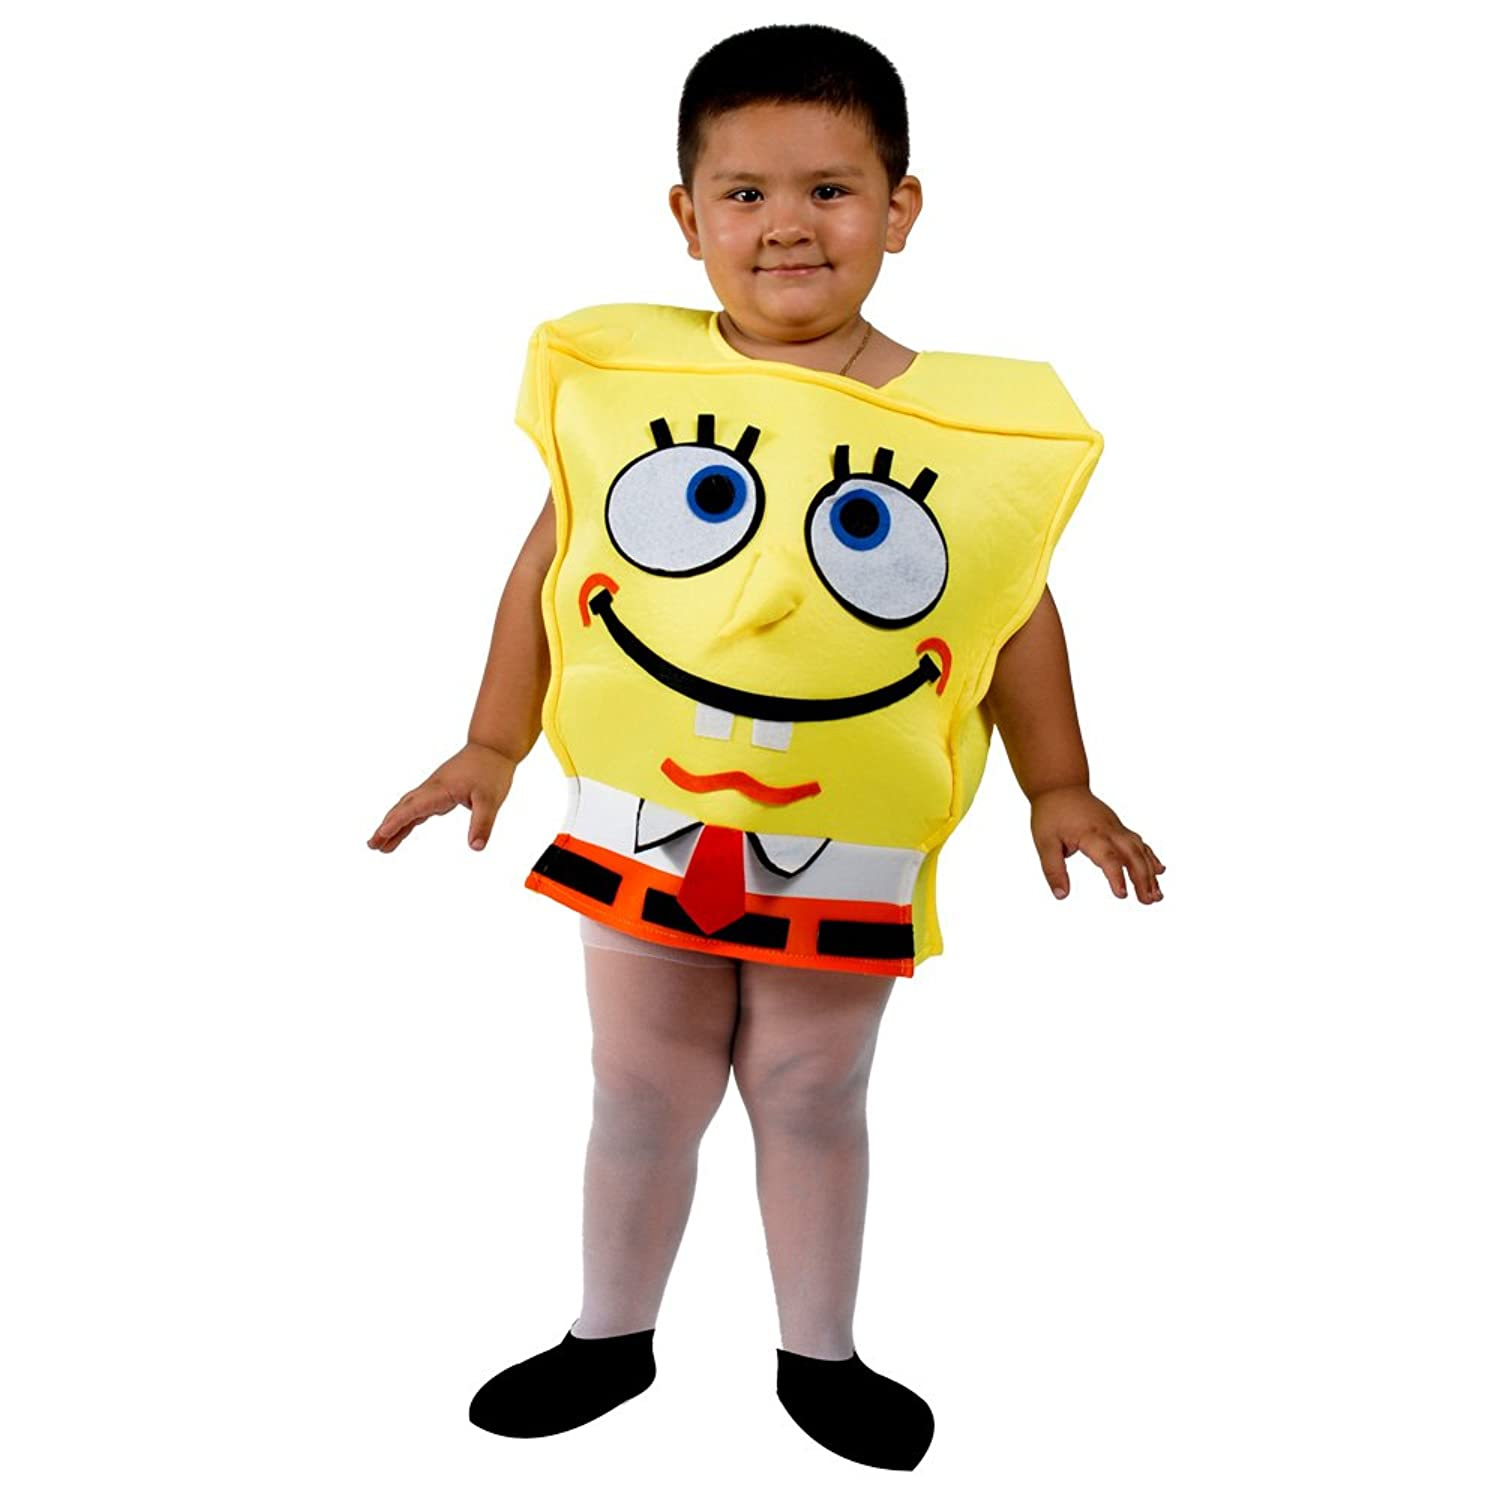 spongebob squarepants halloween costumes